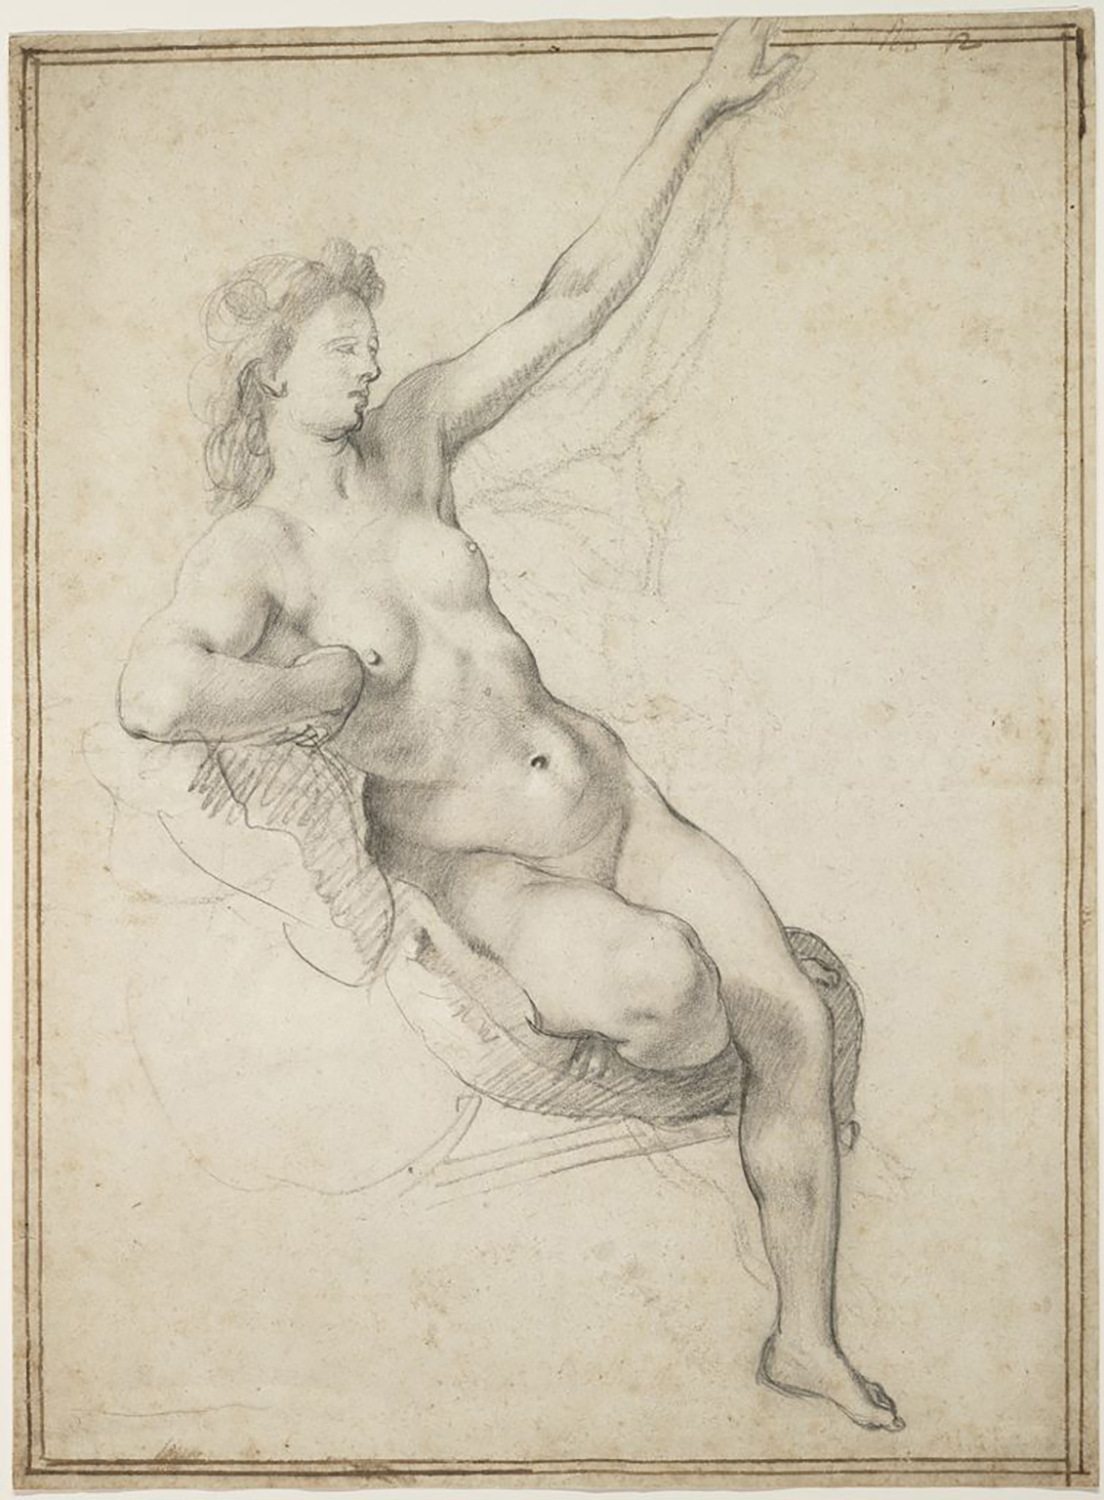 Hendrick Goltzius, Seated Female Nude, c. 1594–1600. Black chalk on paper; later borderline in brown ink. Maida and George Abrams Collection, Boston, Massachusetts, TL41760.1.